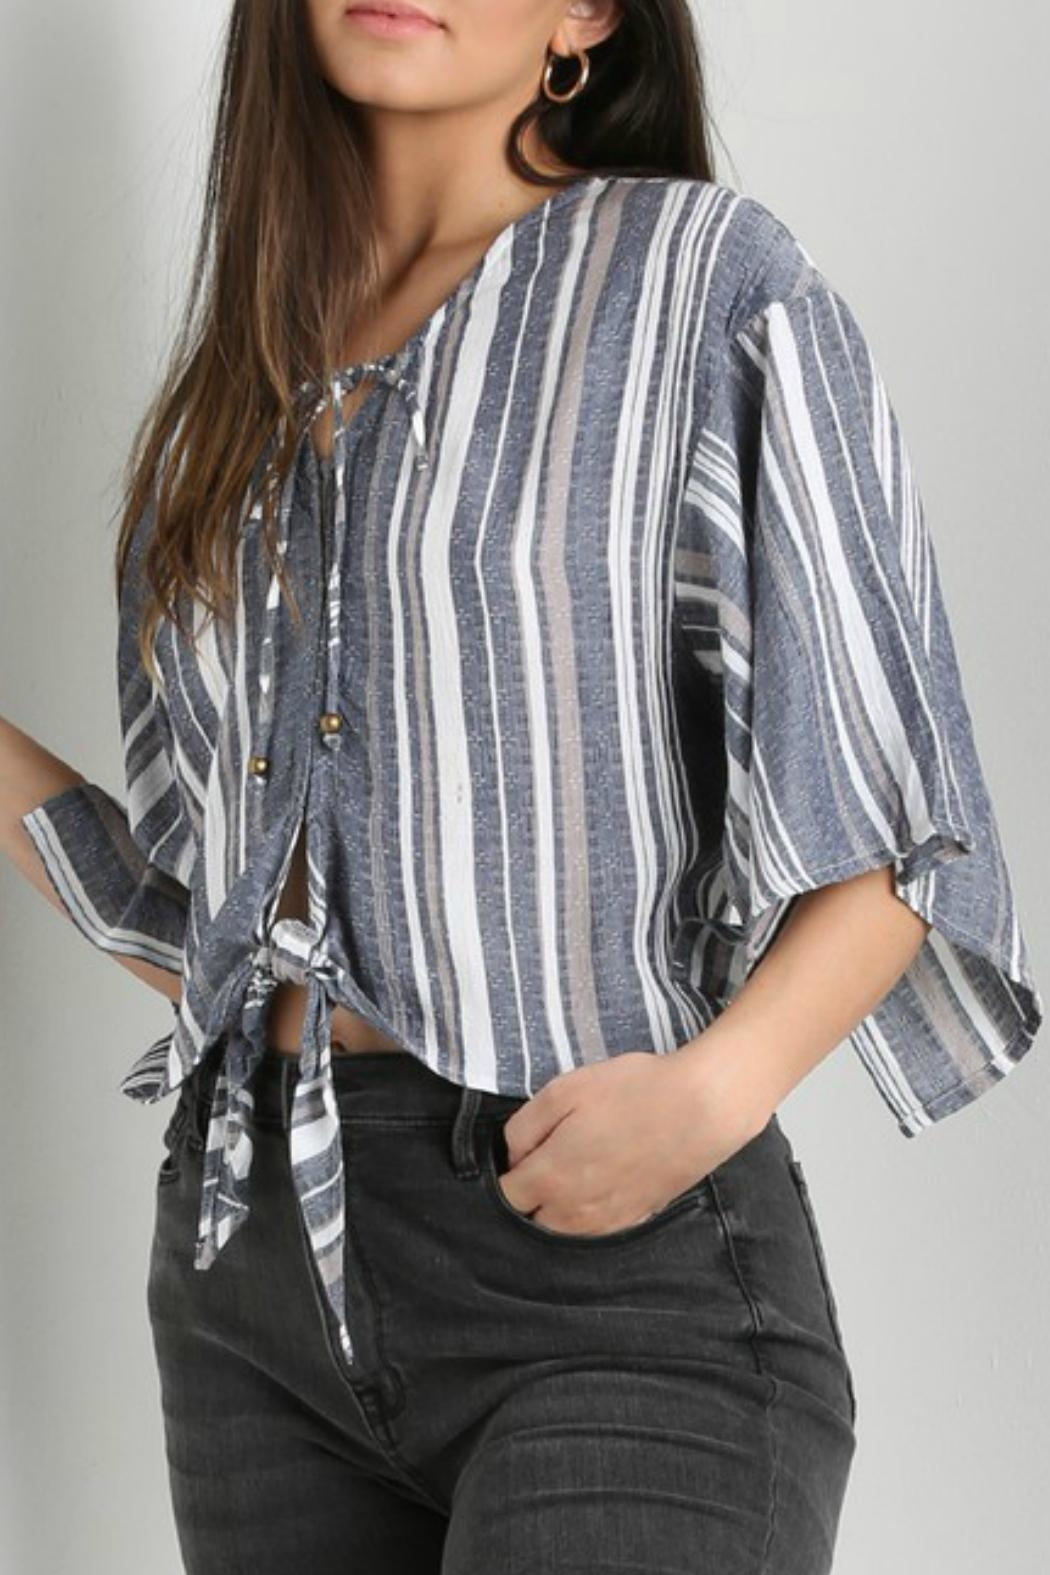 Angie Clothes Kimono Sleeve Top - Front Full Image